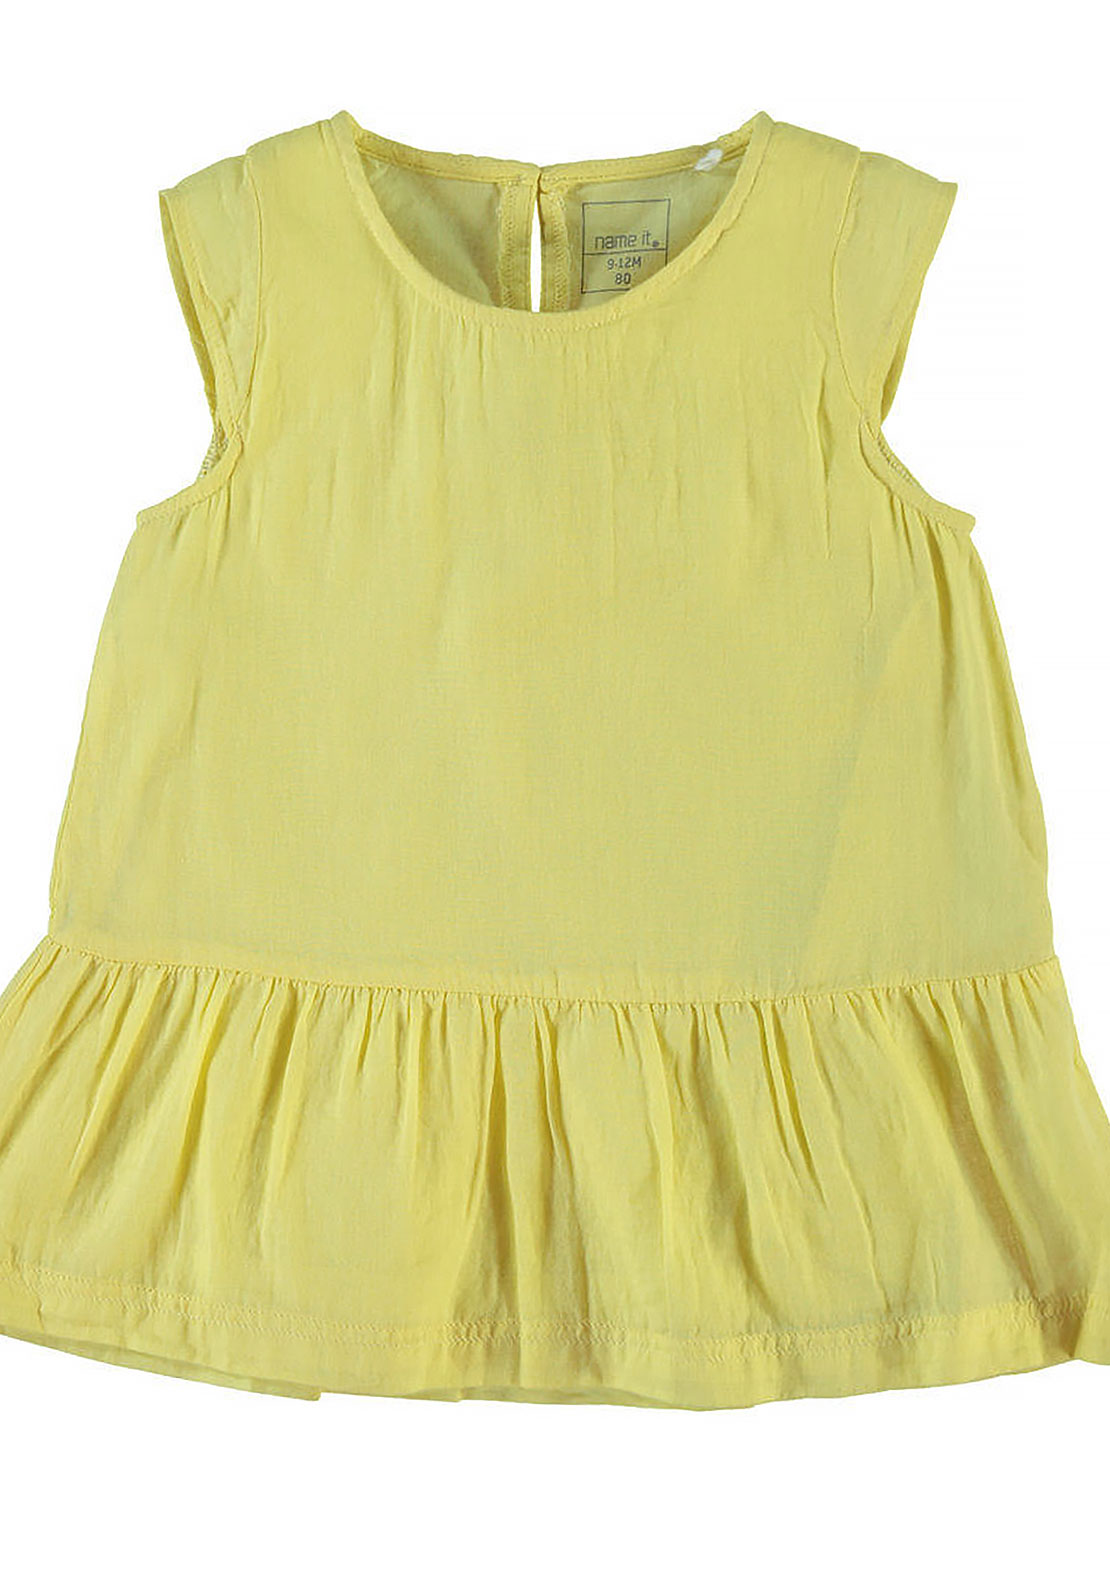 Name It Mini Girls Hanne Tunic Dress, Popcorn Yellow